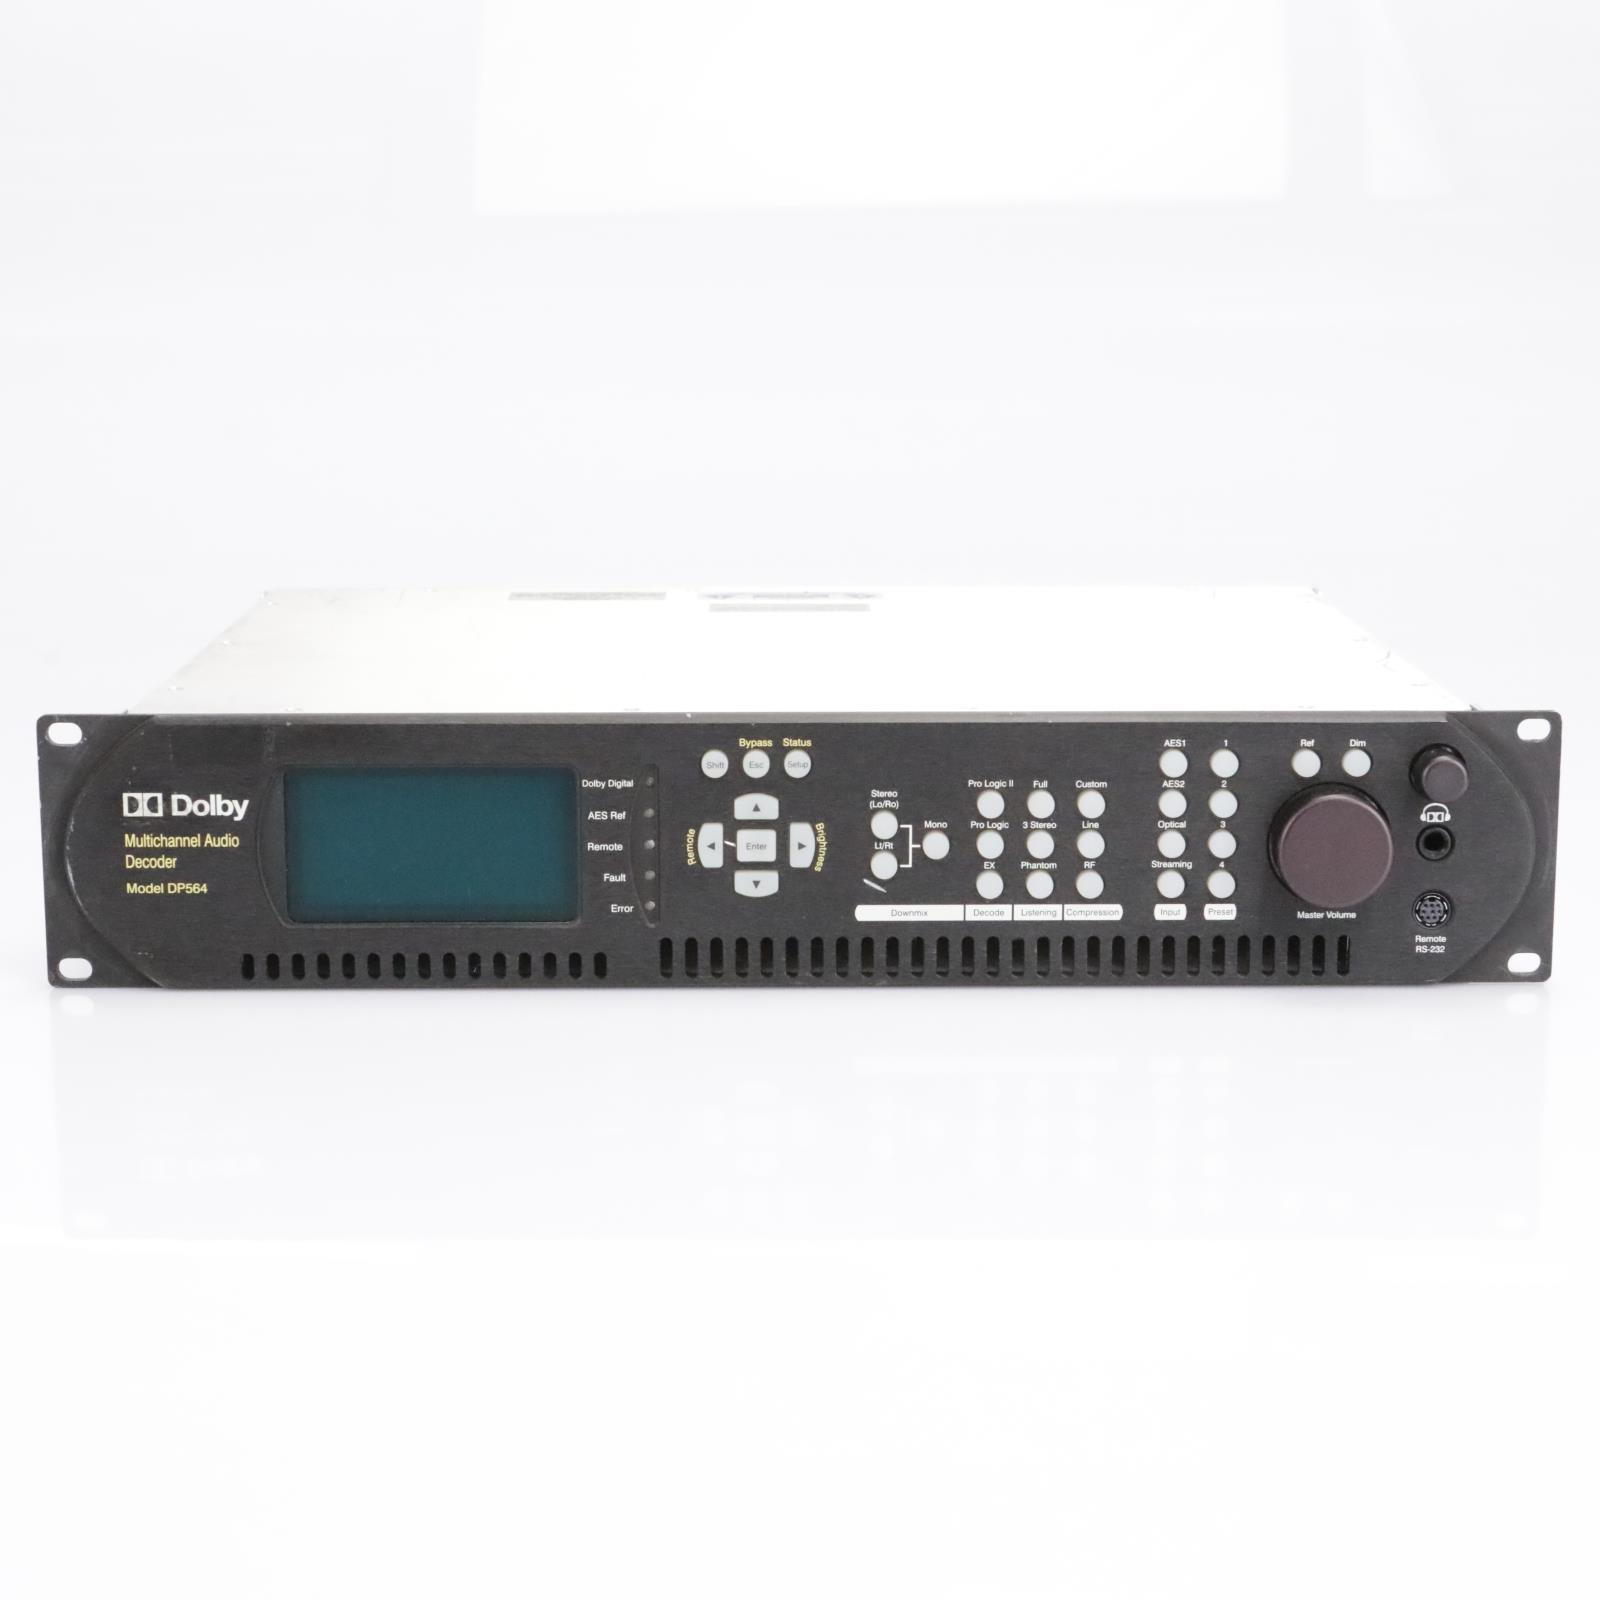 Dolby DP564 Multi-Channel Audio Decoder #42821